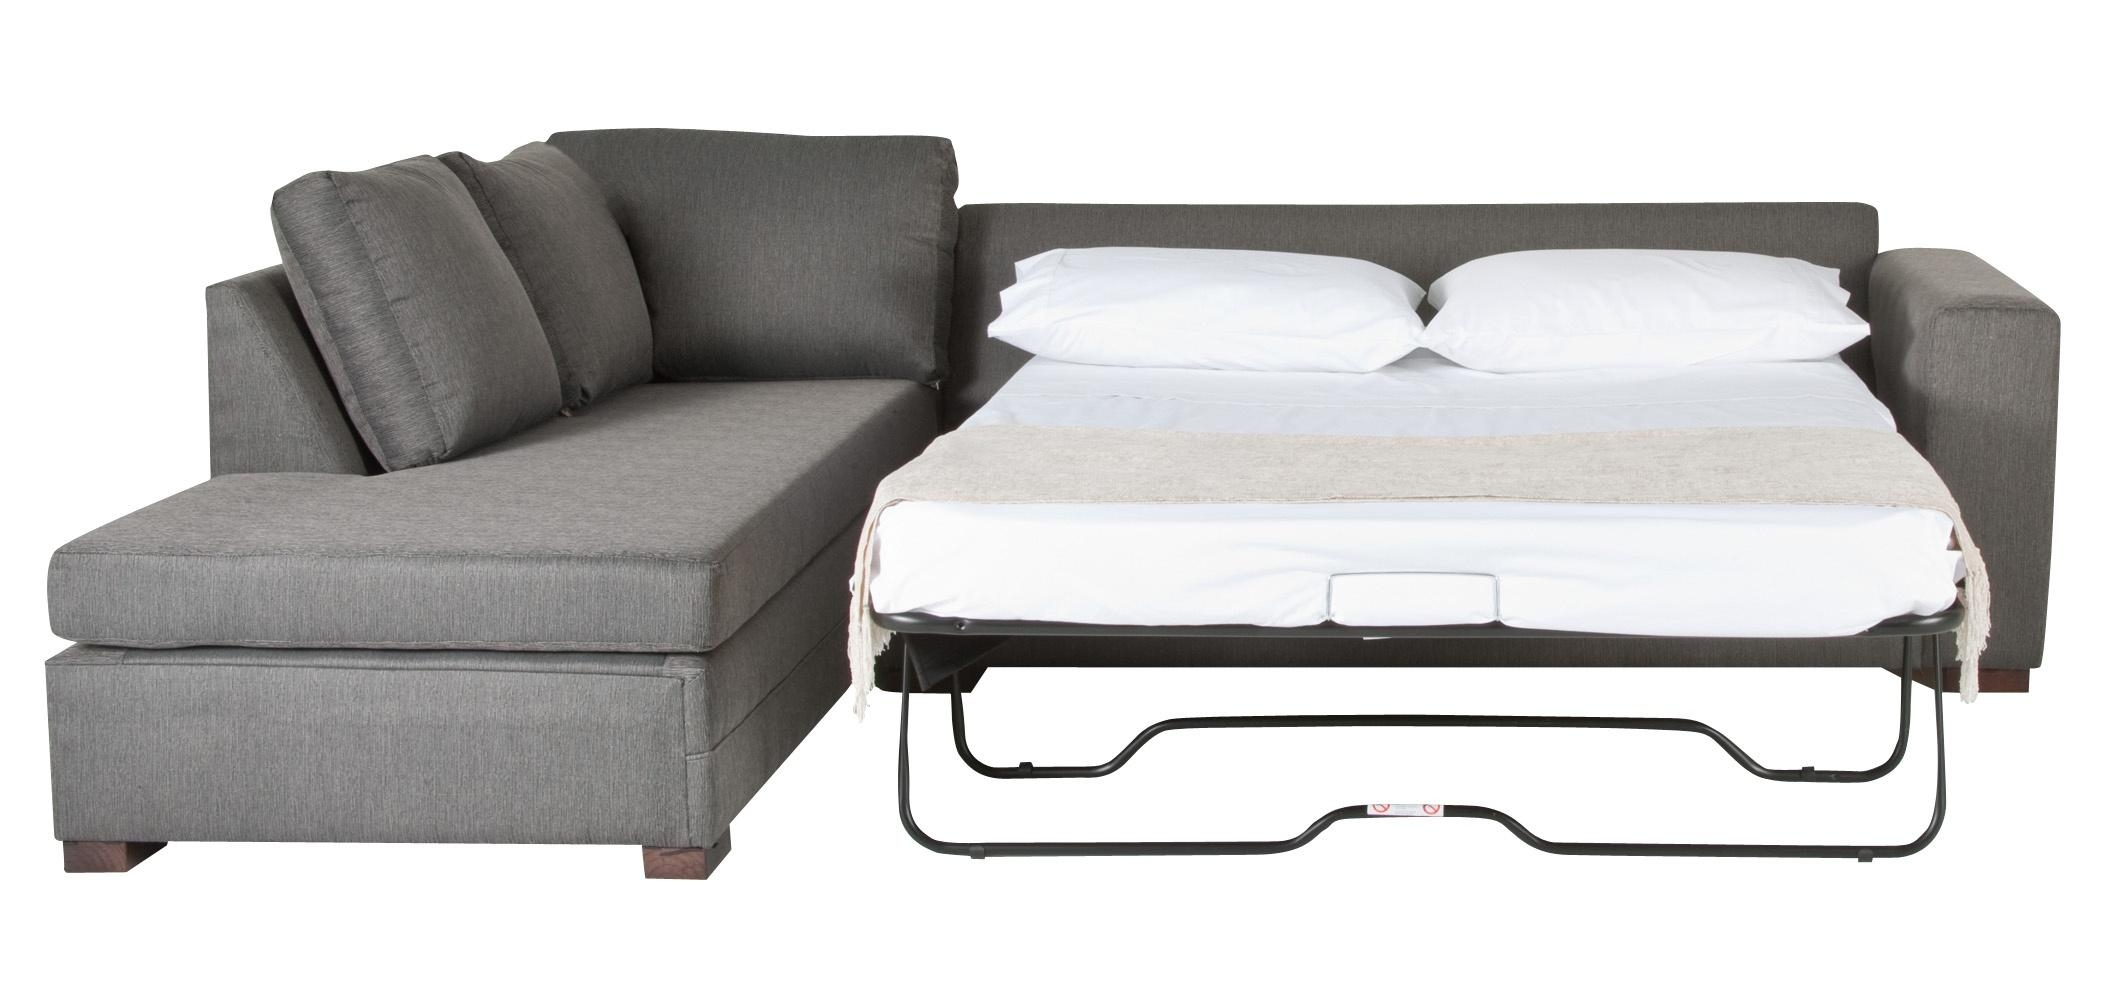 Fold Out Sectional Sleeper Sofa – Hotelsbacau Throughout Braxton Sectional Sofa (View 13 of 15)